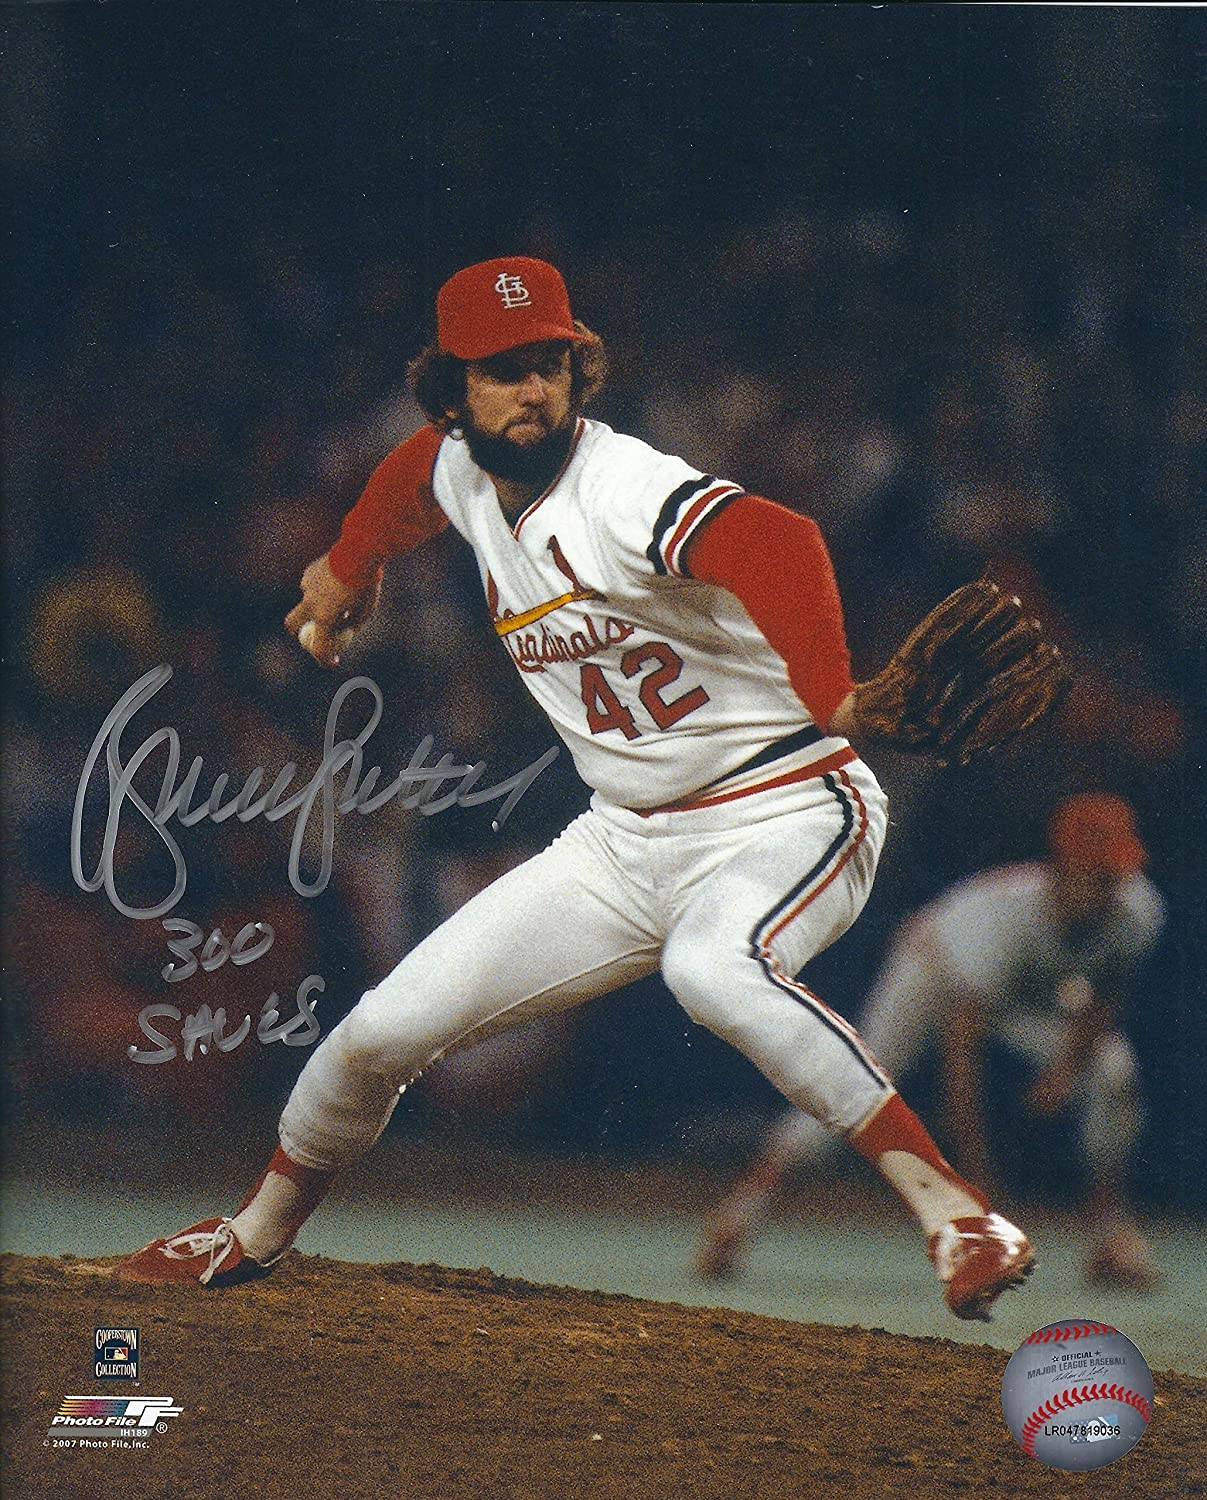 10374e3ee2e Amazon.com  Autographed Hof R Bruce Sutter 8x10 St. Louis Cardinals Photo   Sports Collectibles